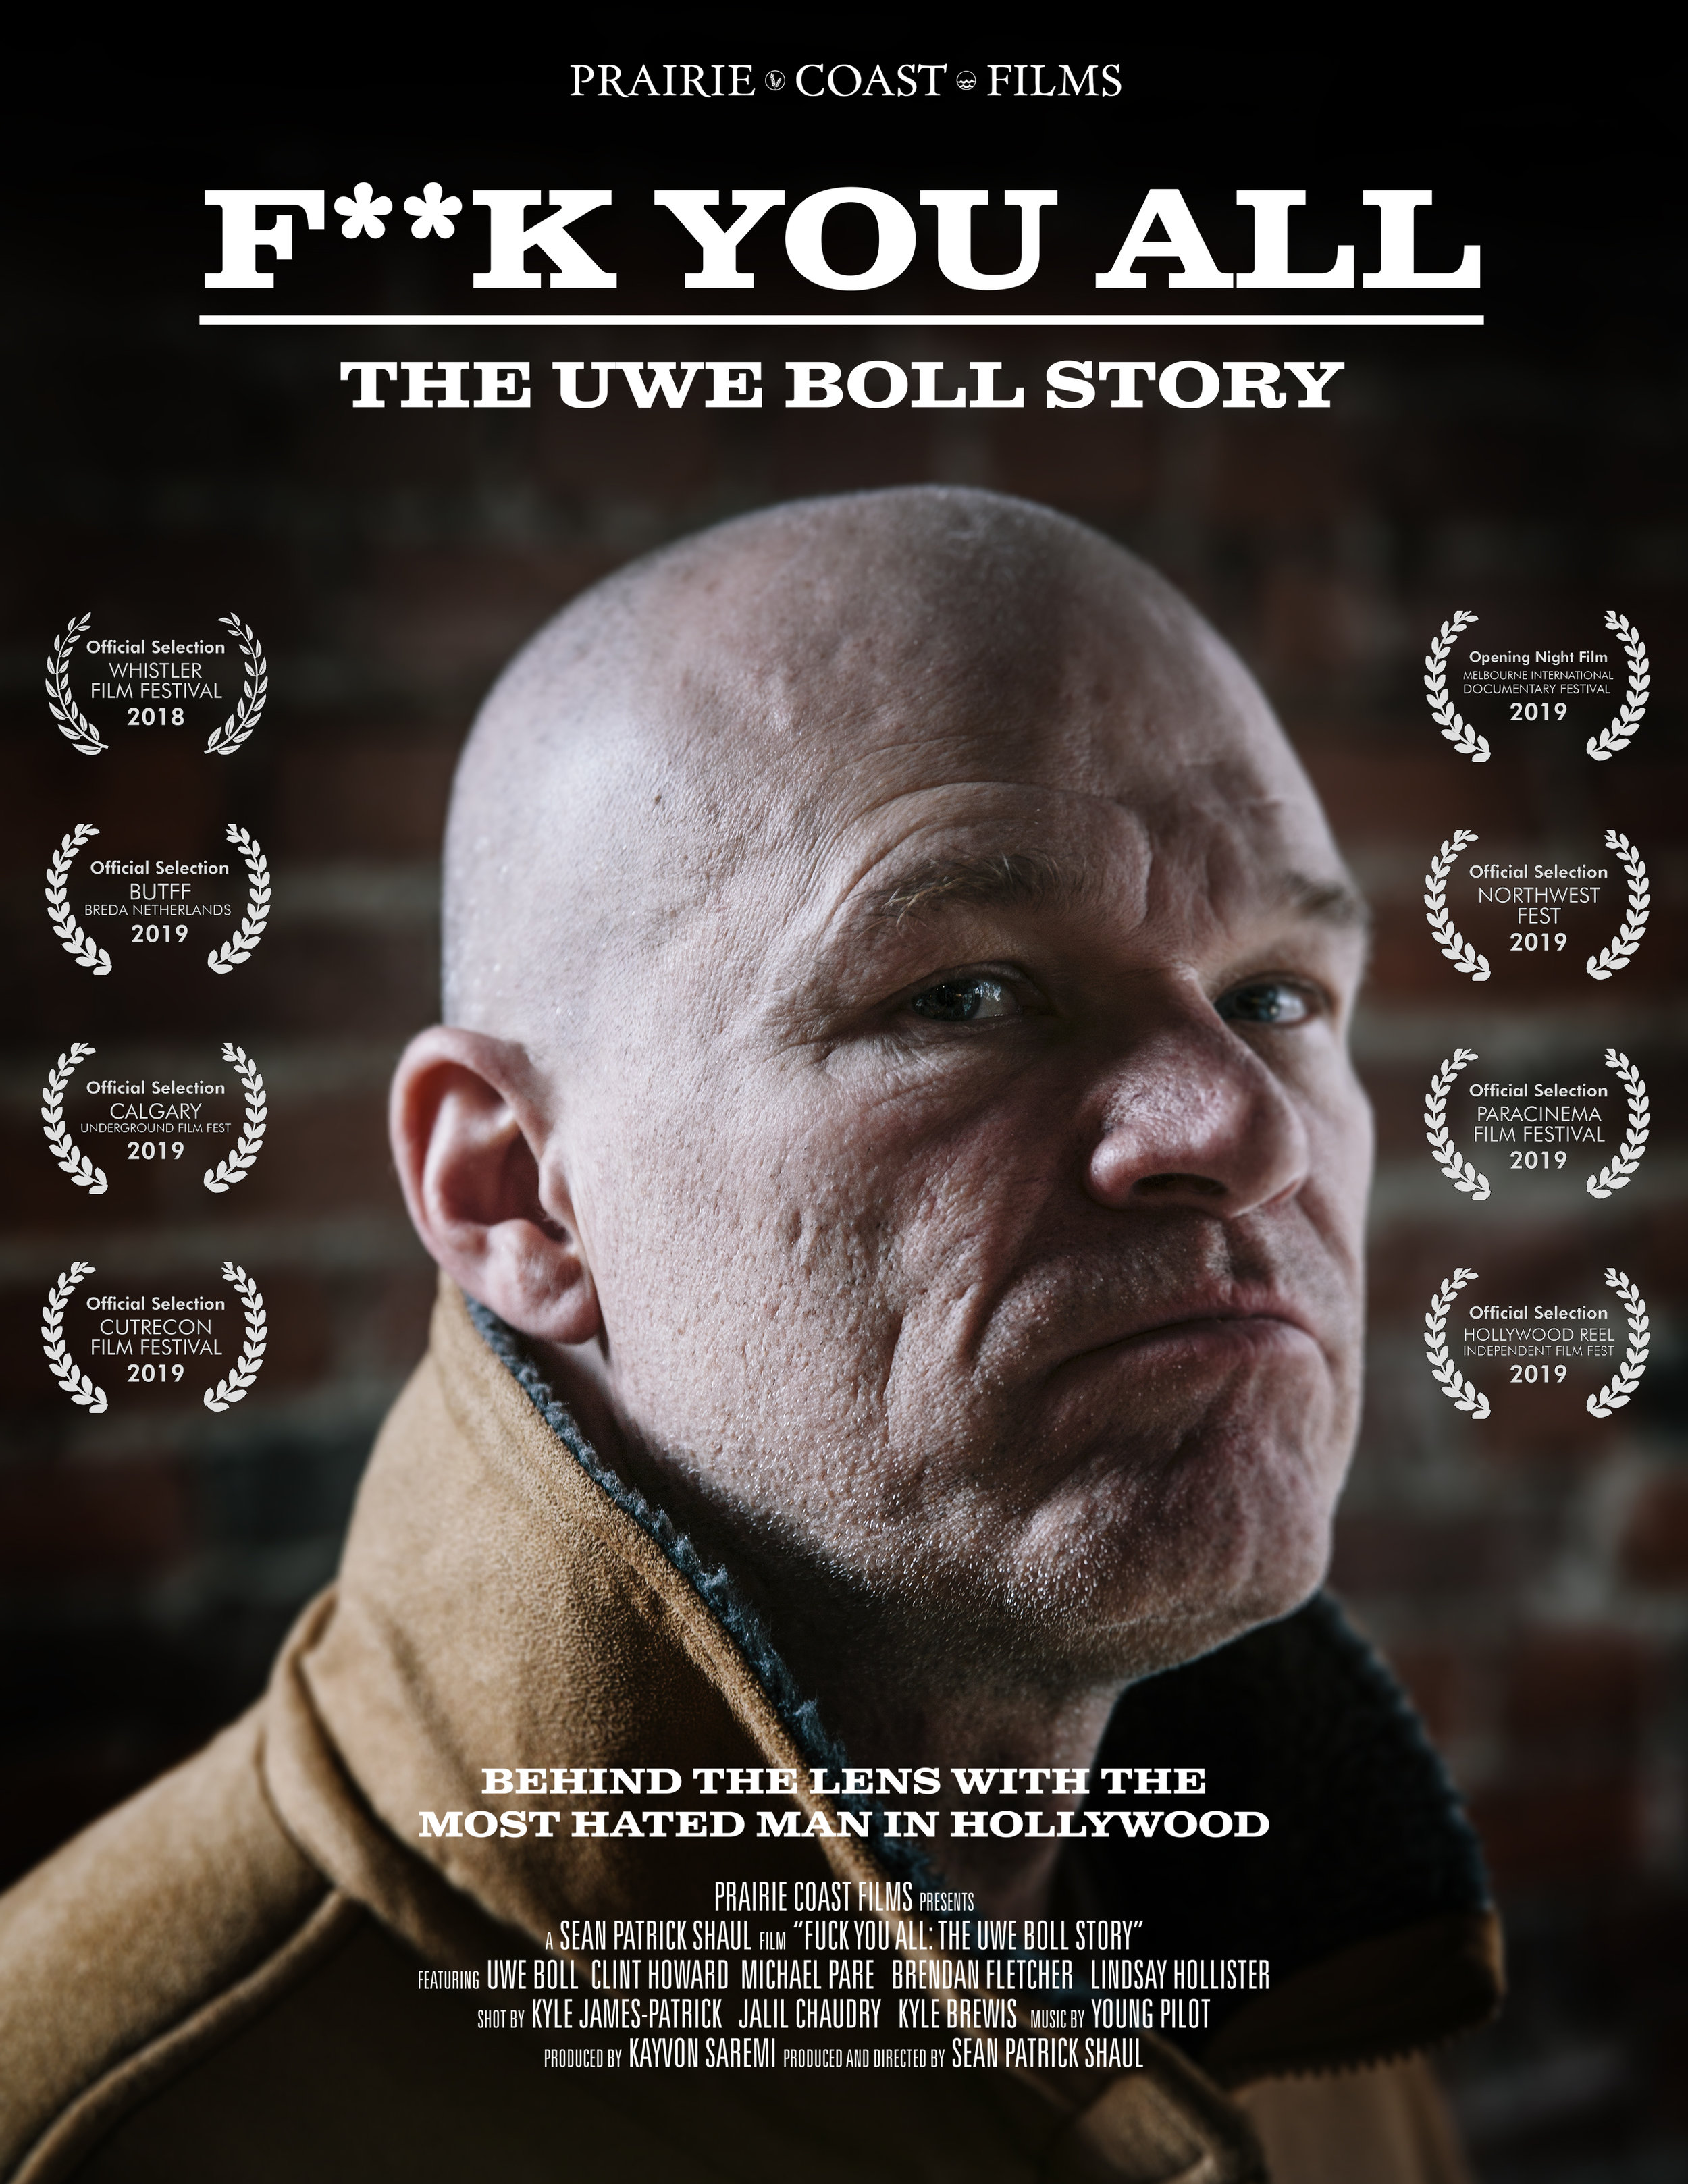 Fuck You All: The Uwe Boll Story poster